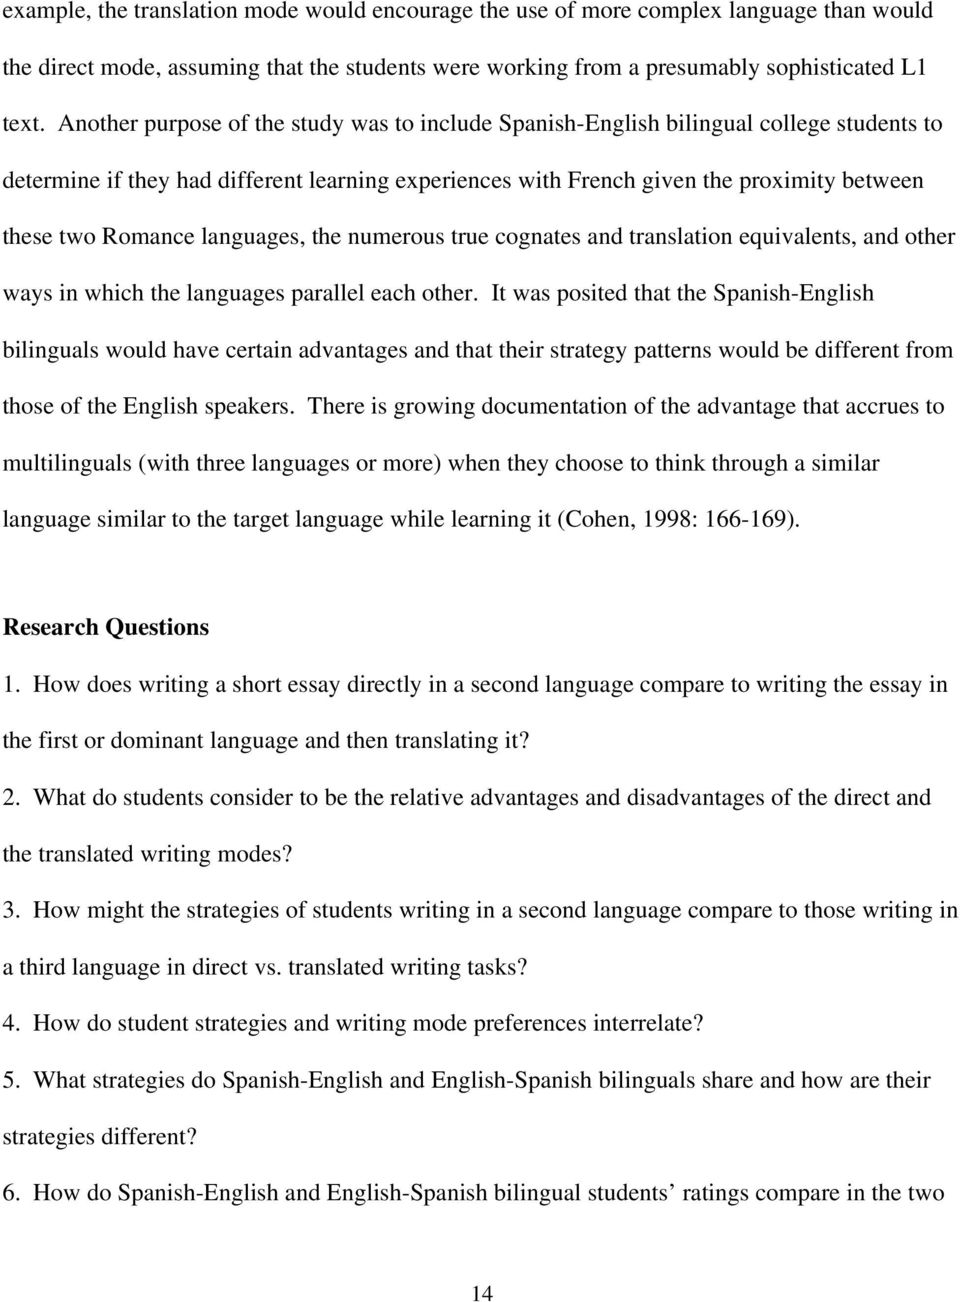 017 Essay Example What Is In Spanish Direct Vs Translated Writing Students Do And Write My Paper Pa For Imposing English From Called Full